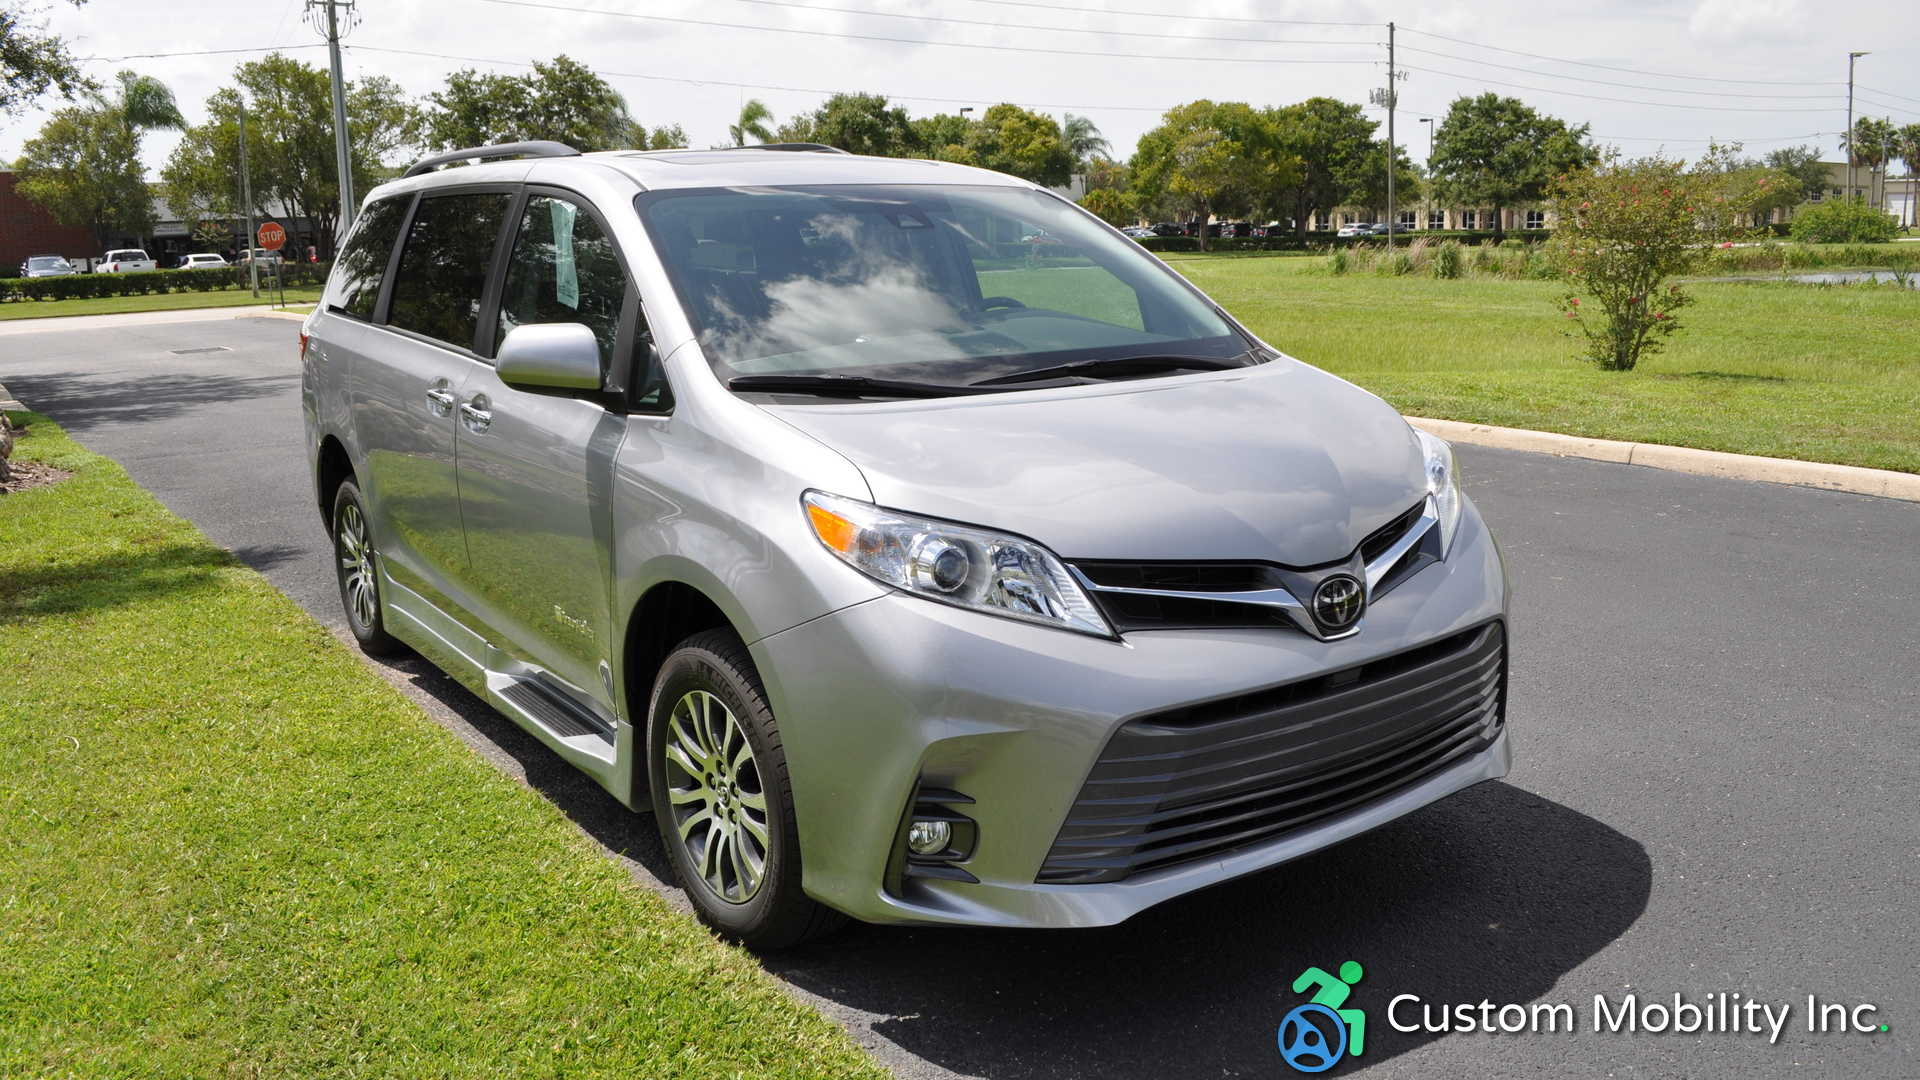 Toyota Sienna 2010-2018 Owners Manual: Opening, closing thewindows and moon roof